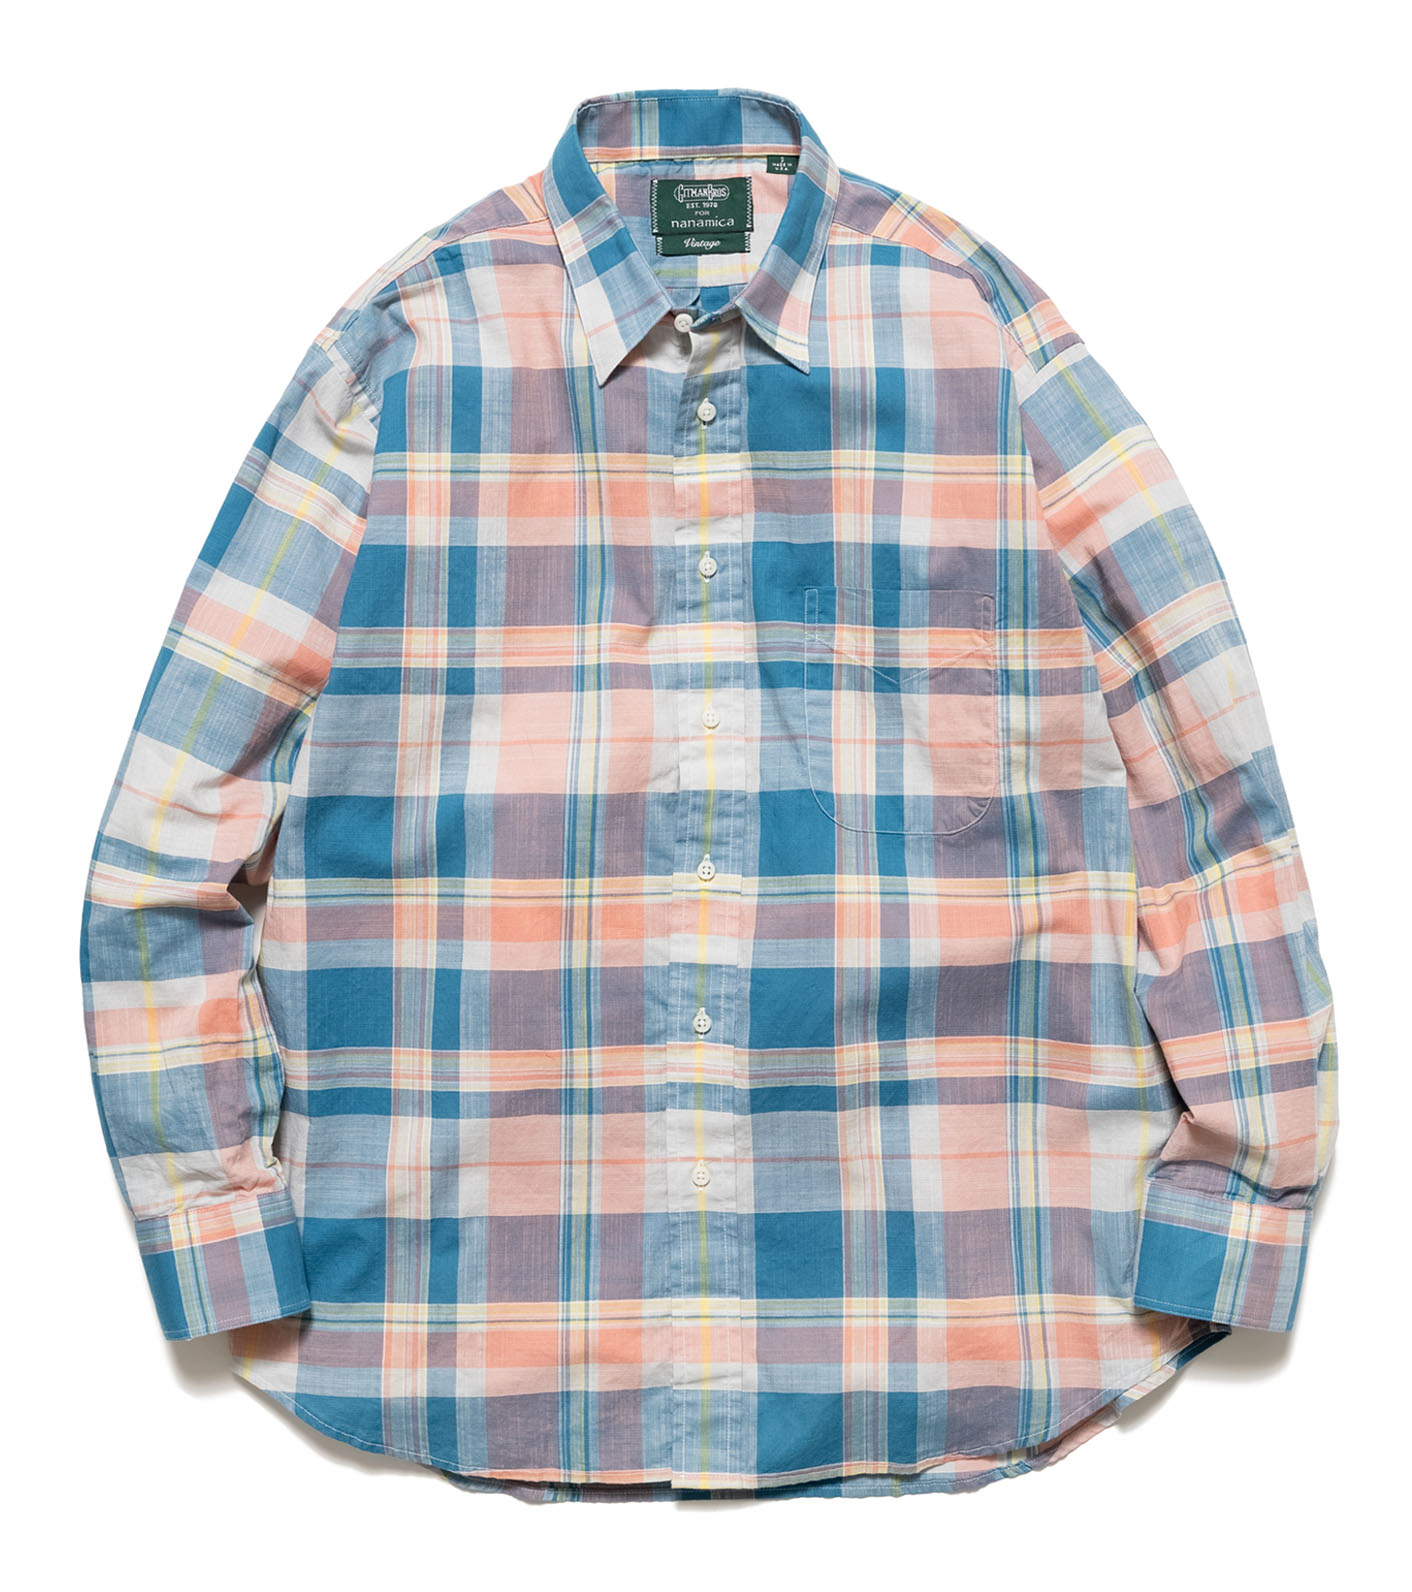 L/S Shirt Archive Cotton Madras